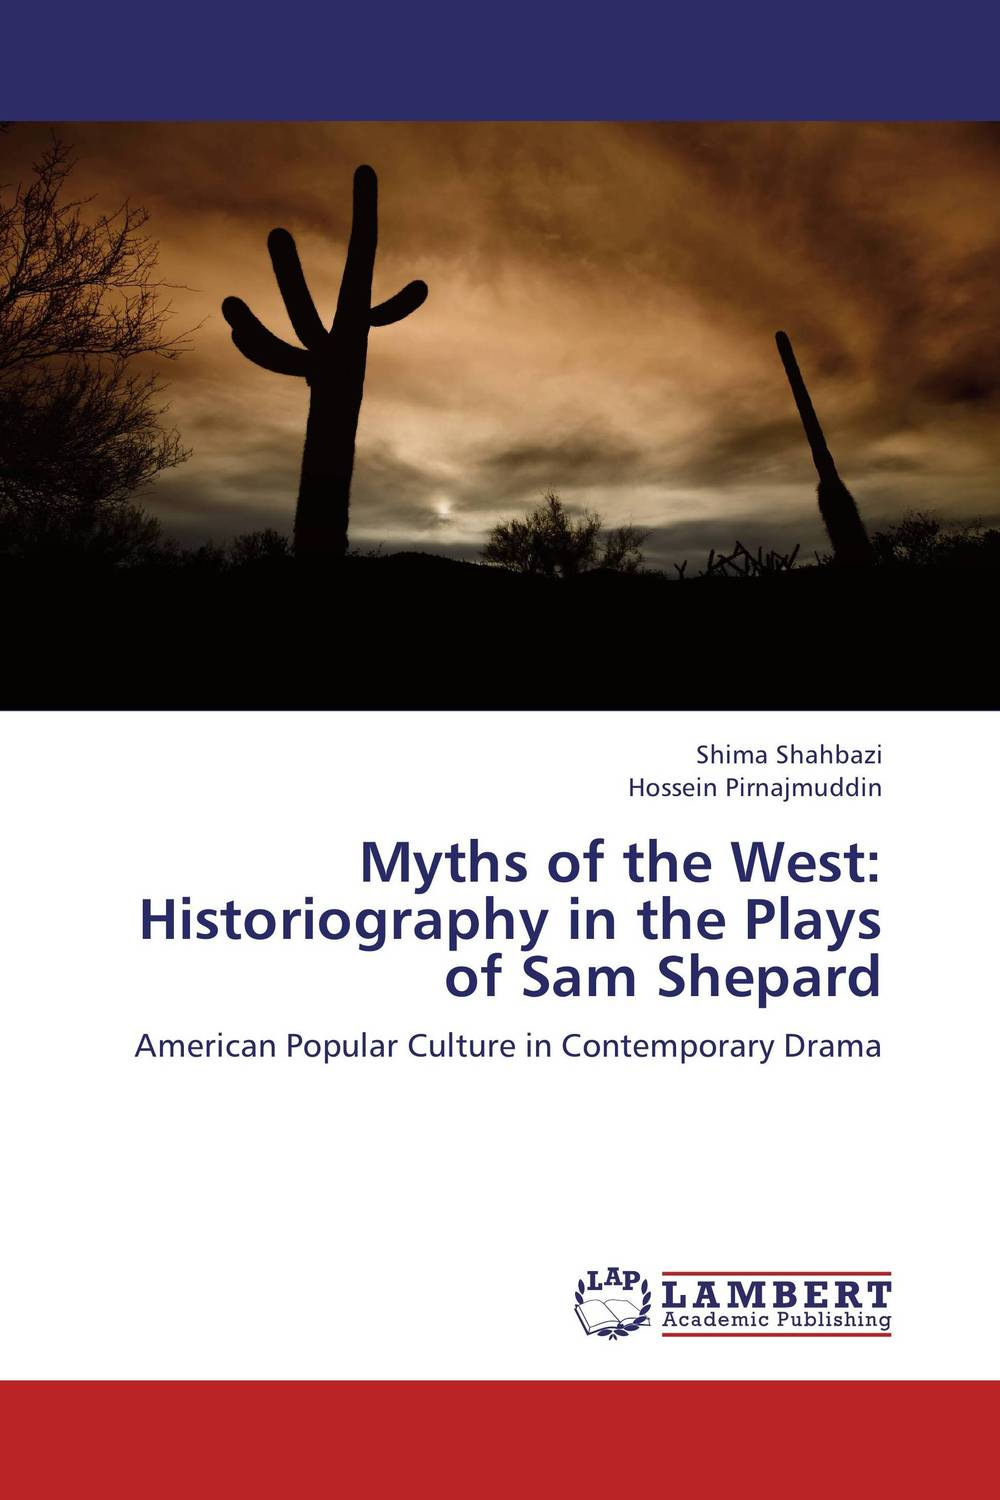 Myths of the West: Historiography in the Plays of Sam Shepard the theme of familial disintegration in select plays of sam shepard